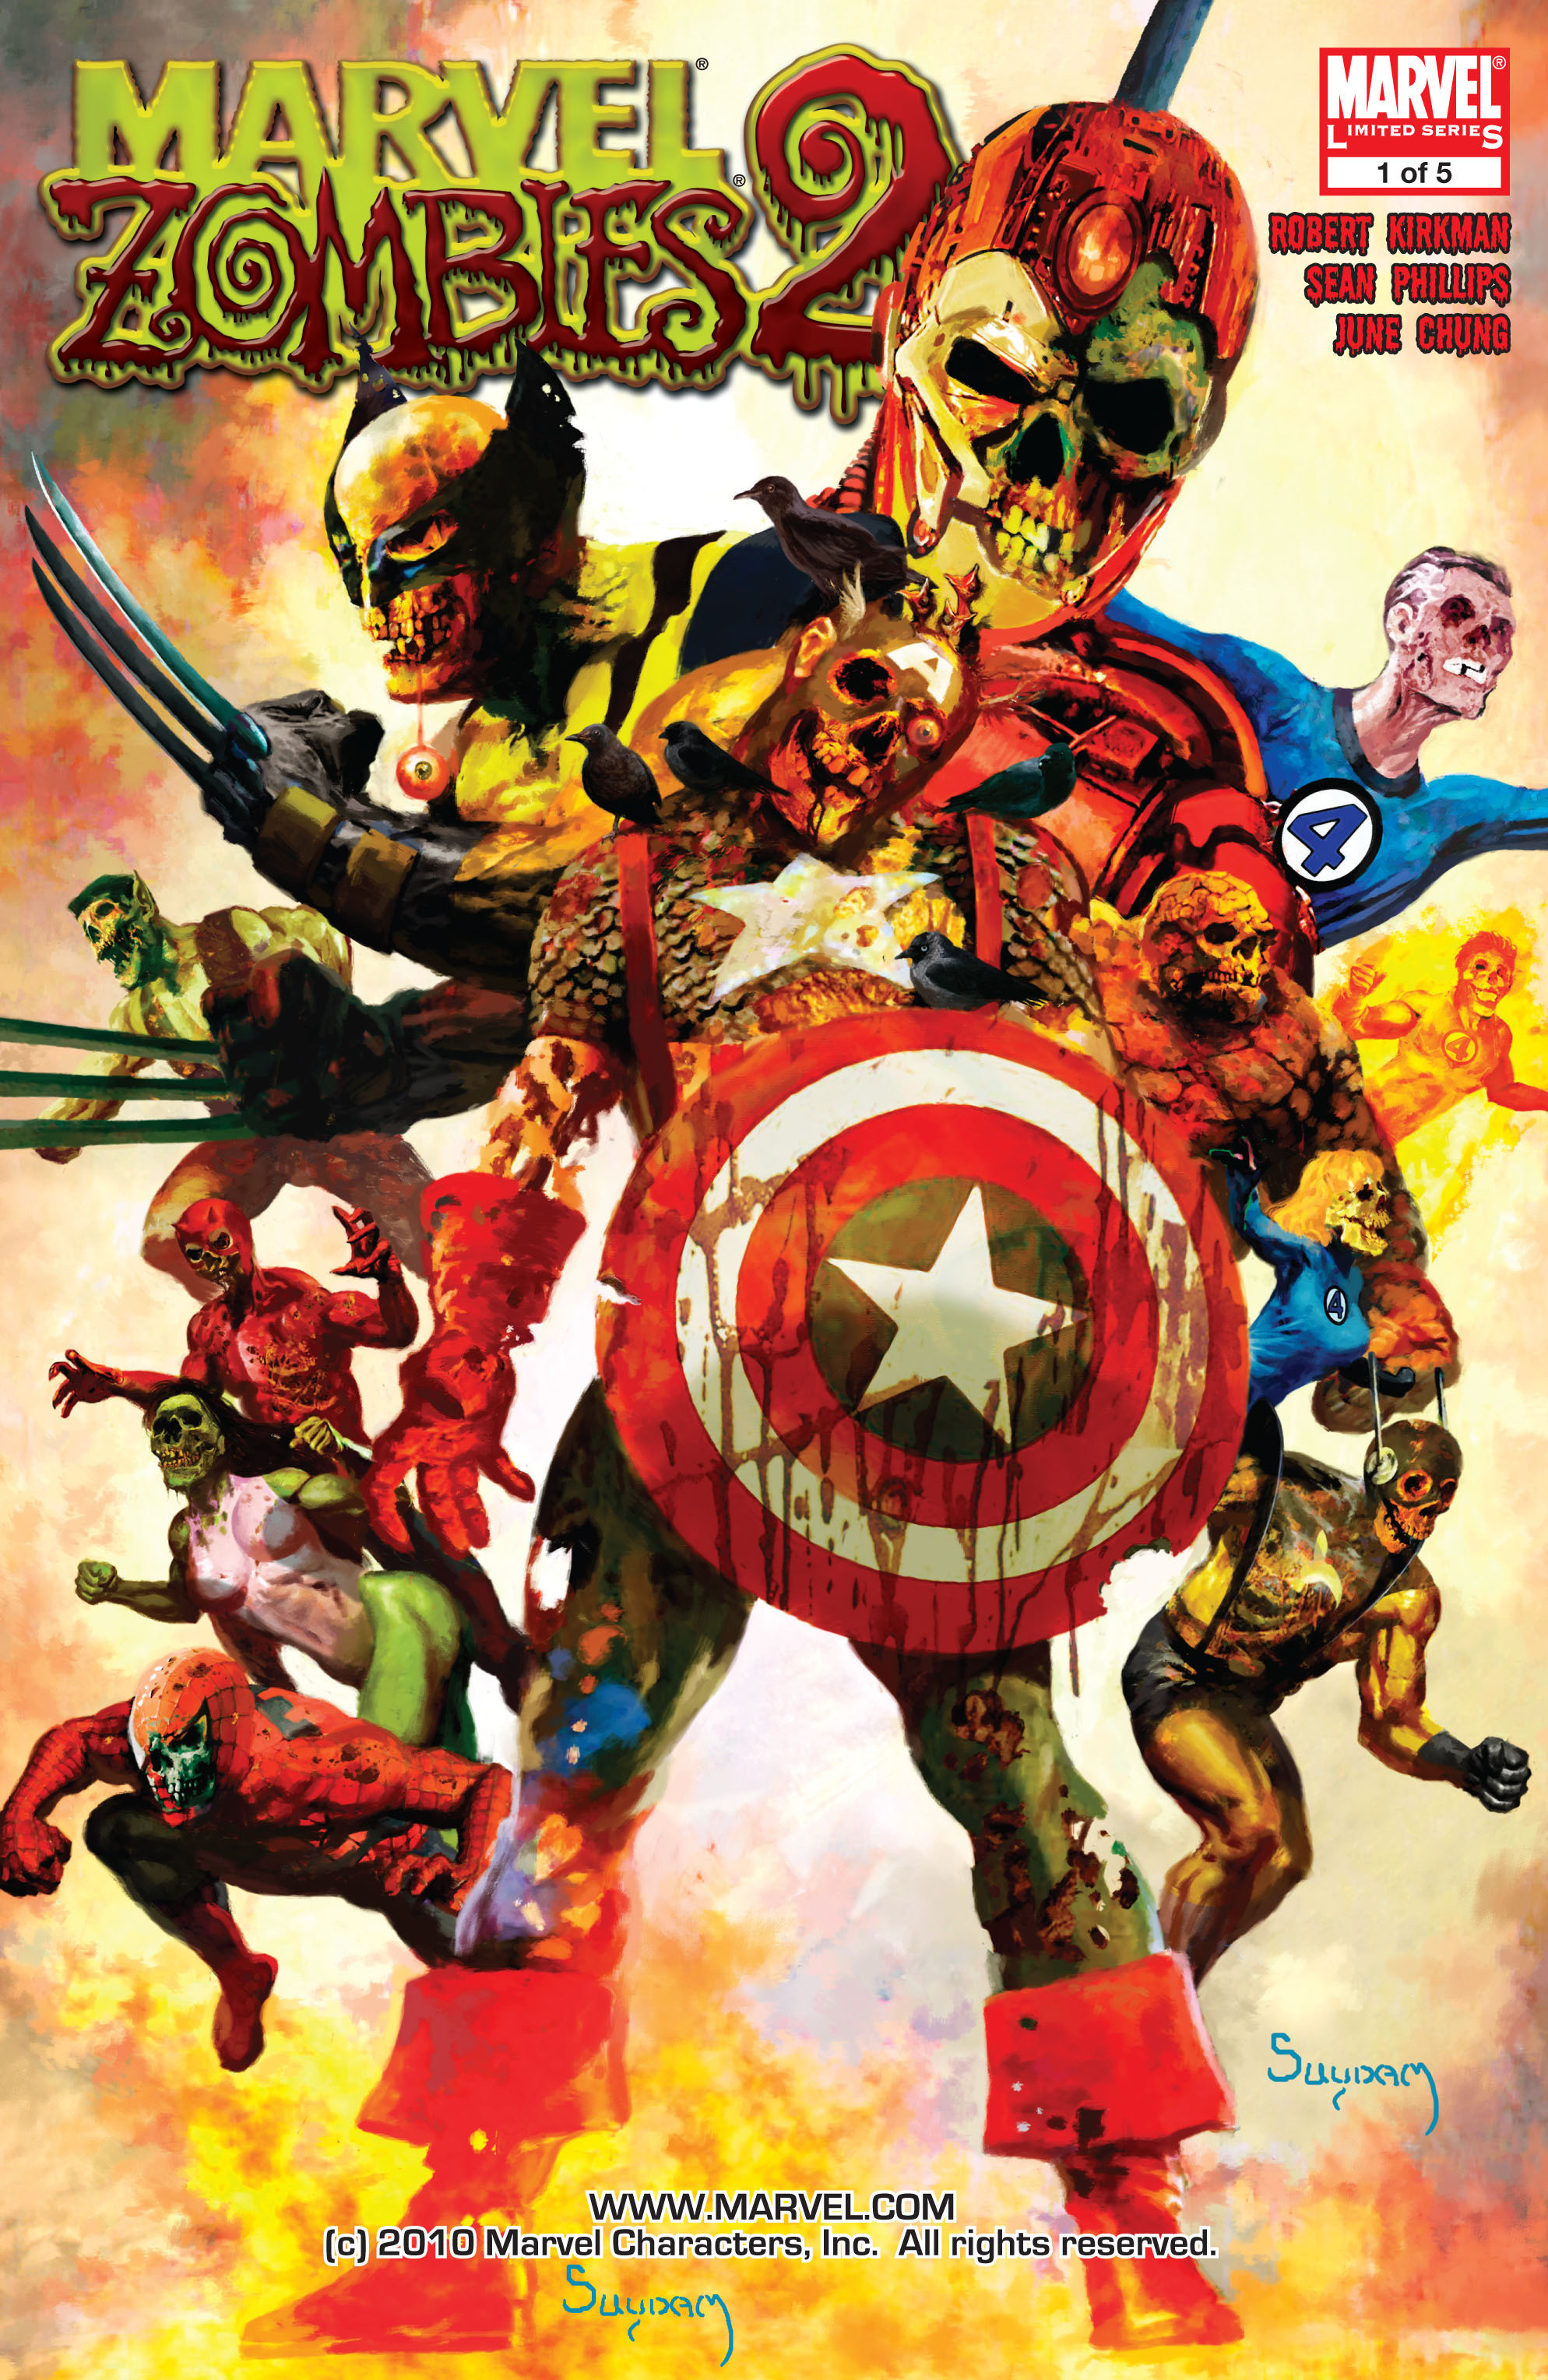 Marvel zombies pic free online erotica pic